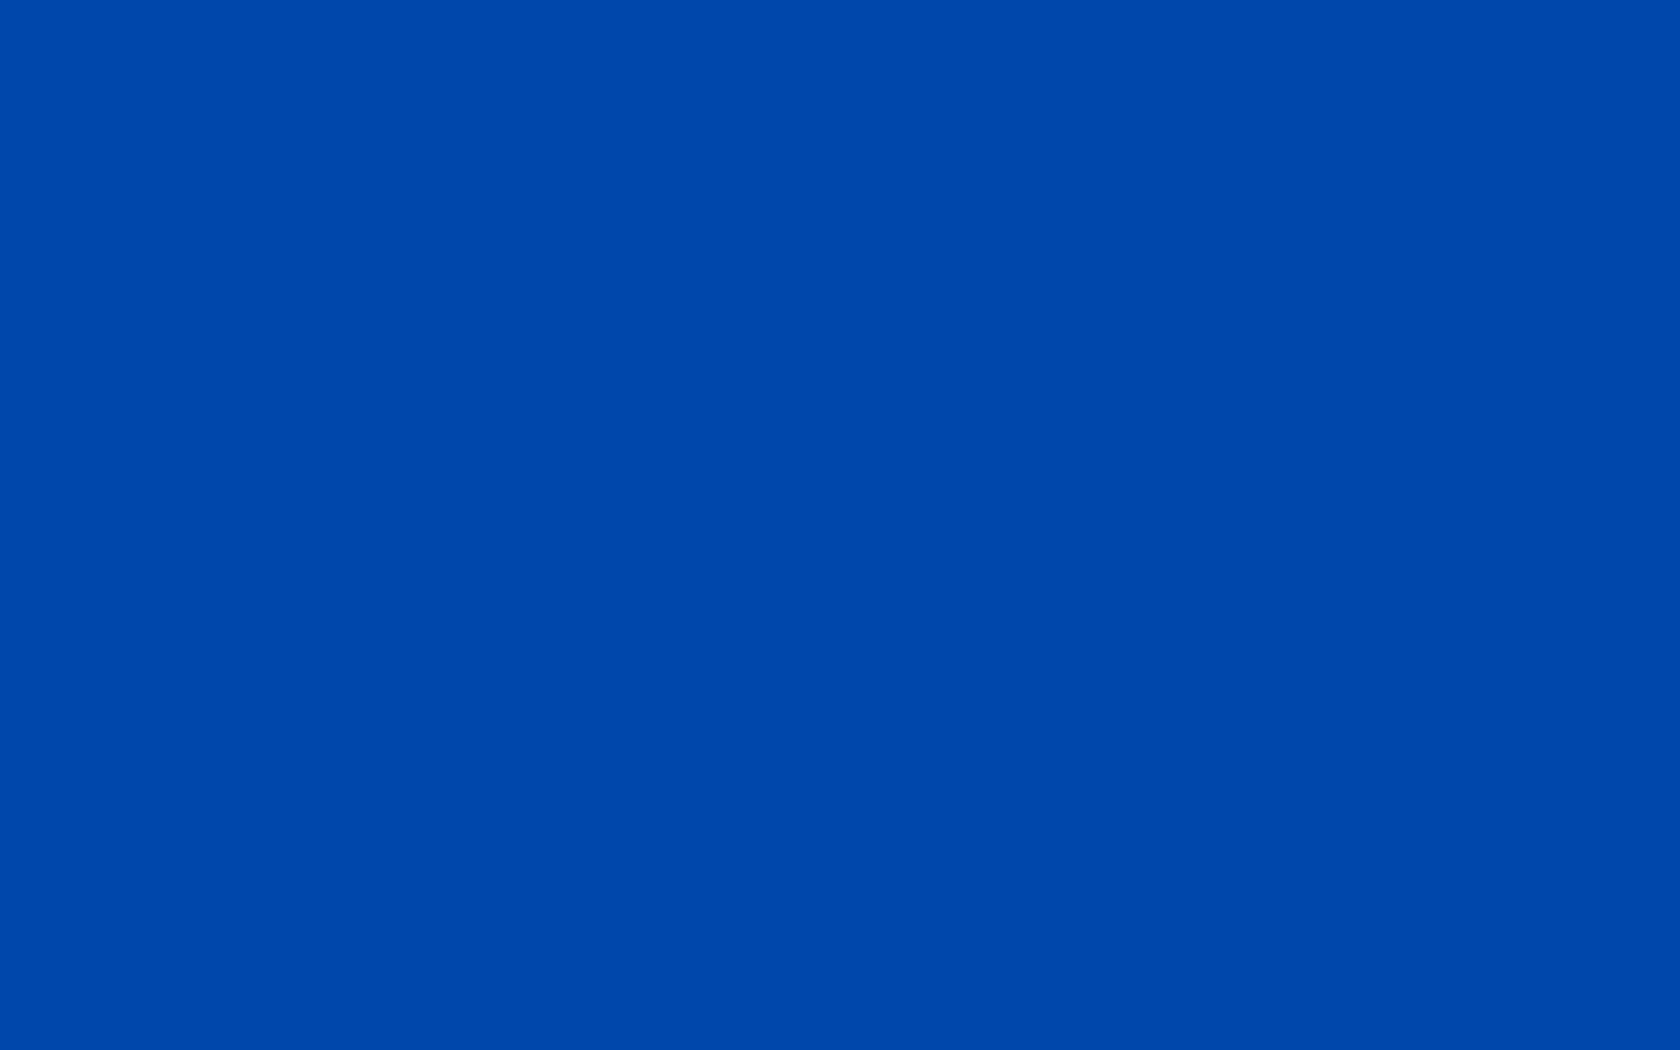 1680x1050 Cobalt Solid Color Background